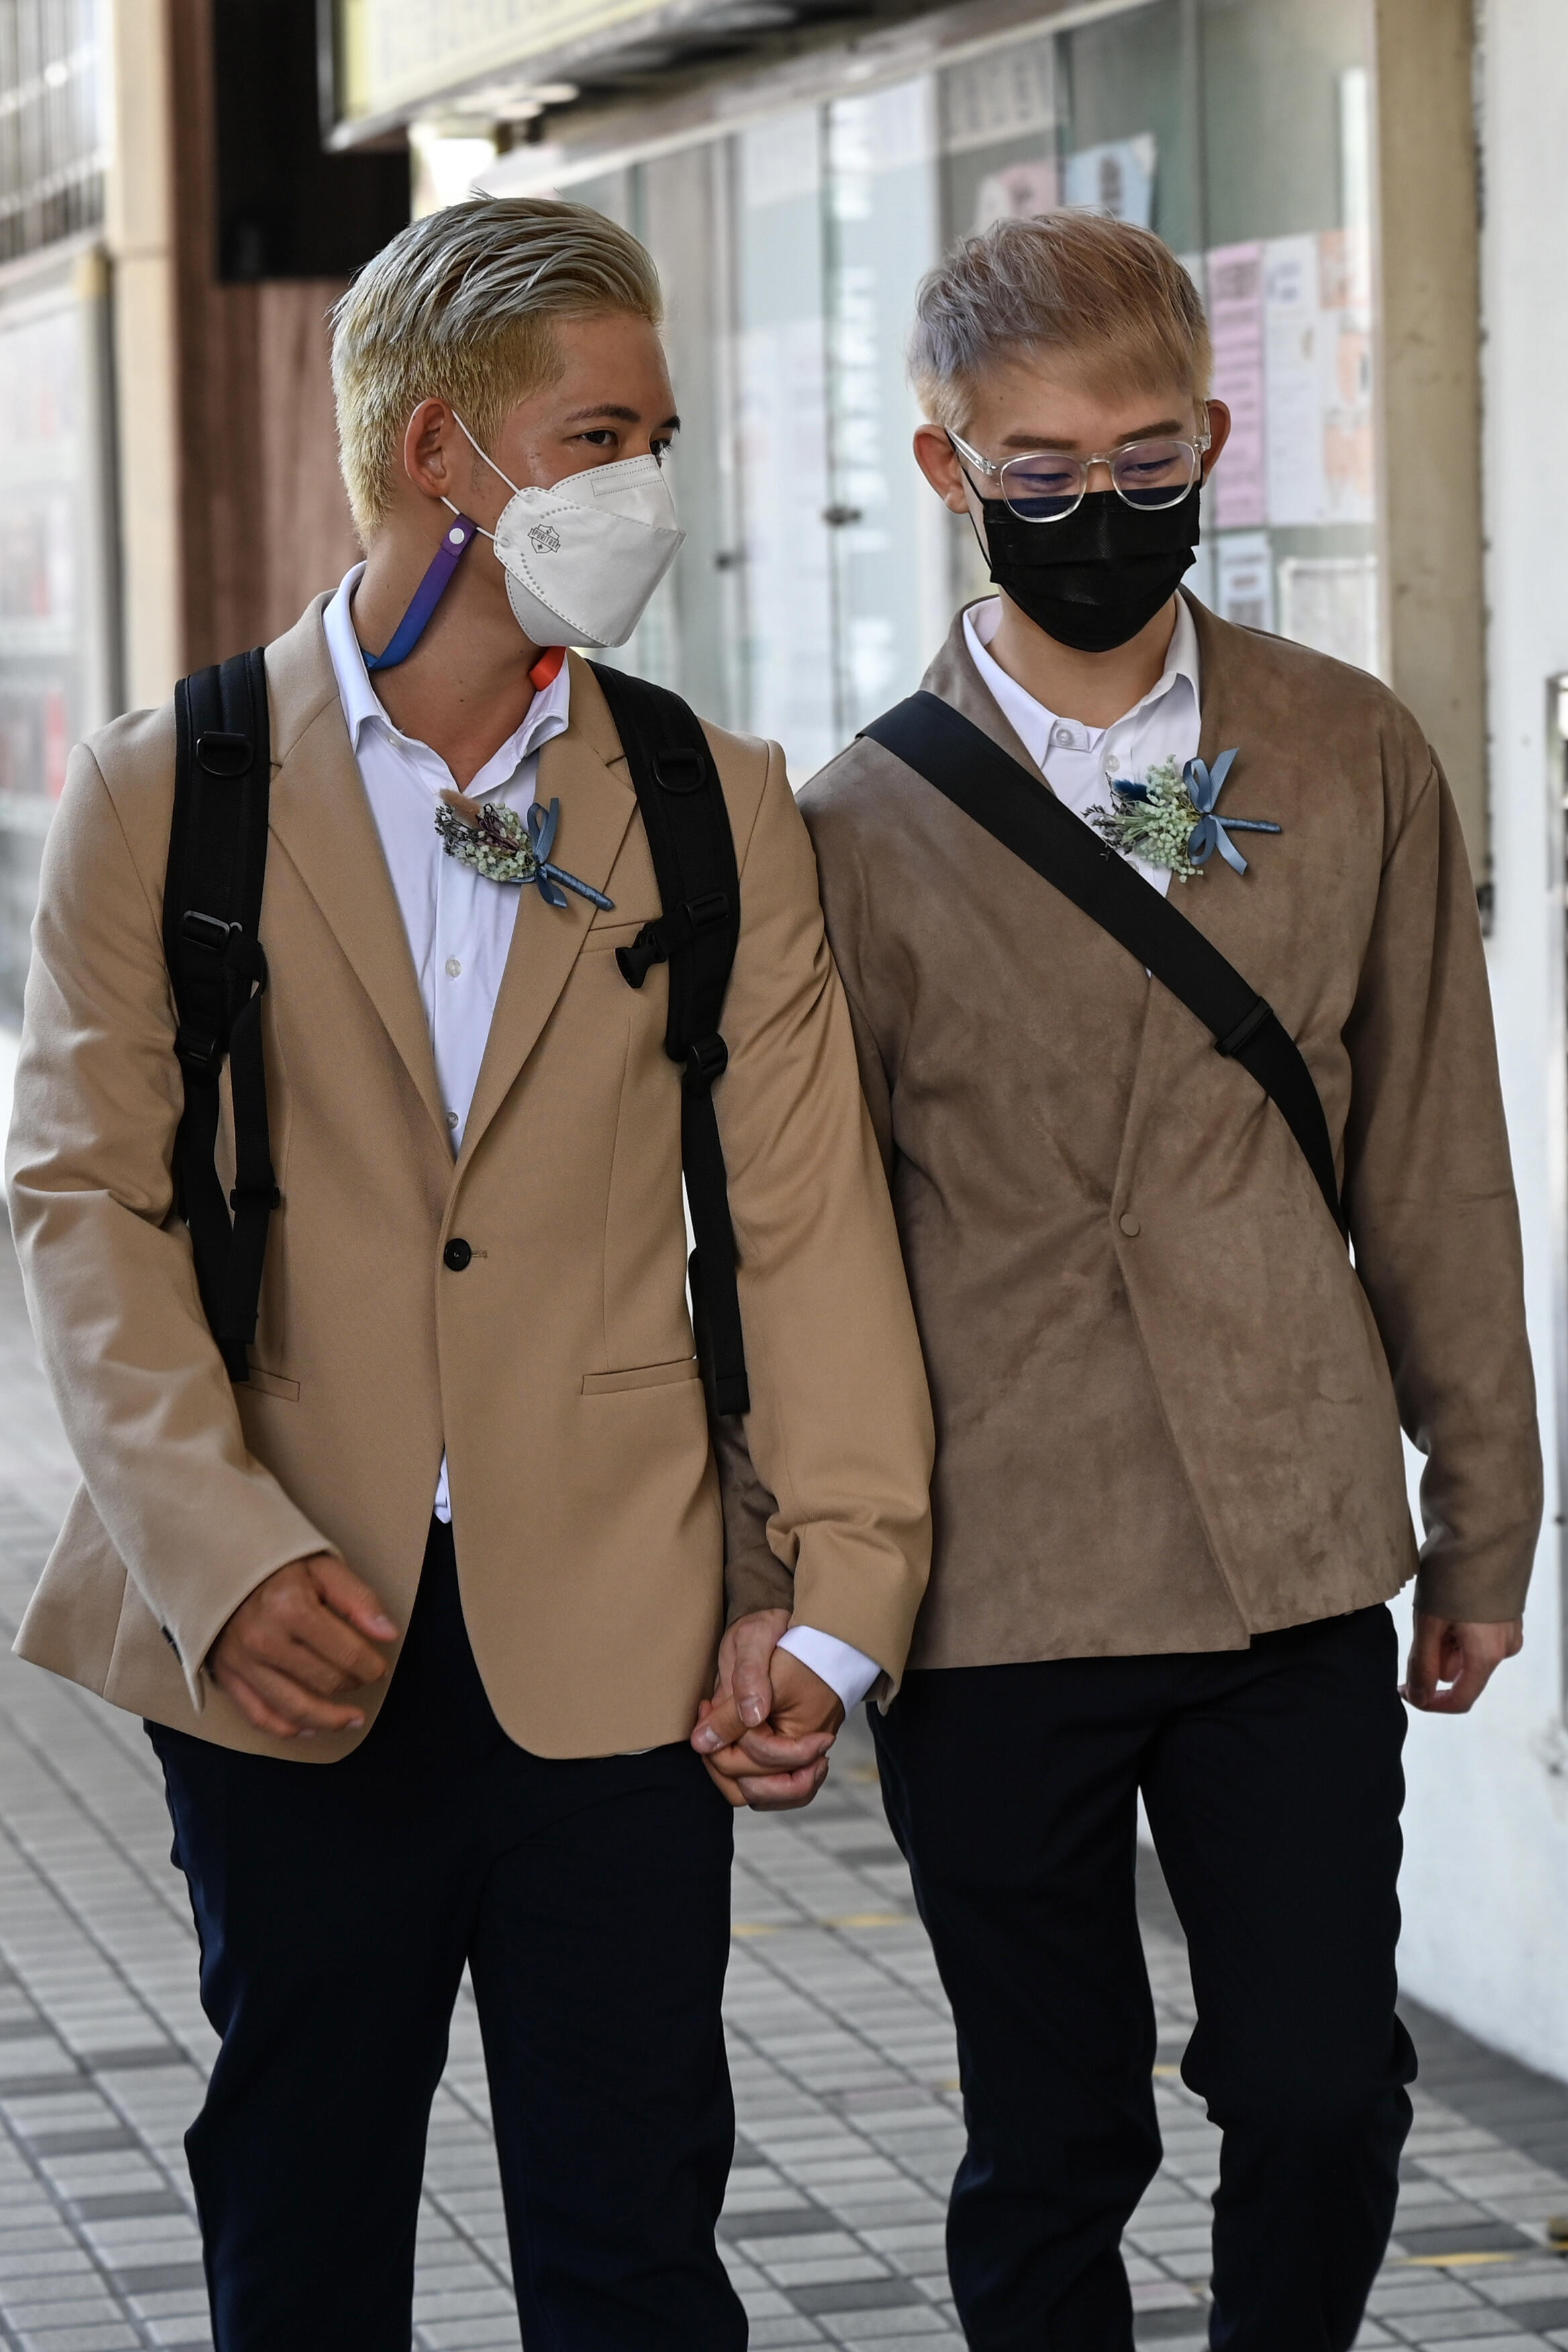 The couple co-founded a group to help more than 100 Taiwanese whose partners are from countries where same-sex marriage is not legal